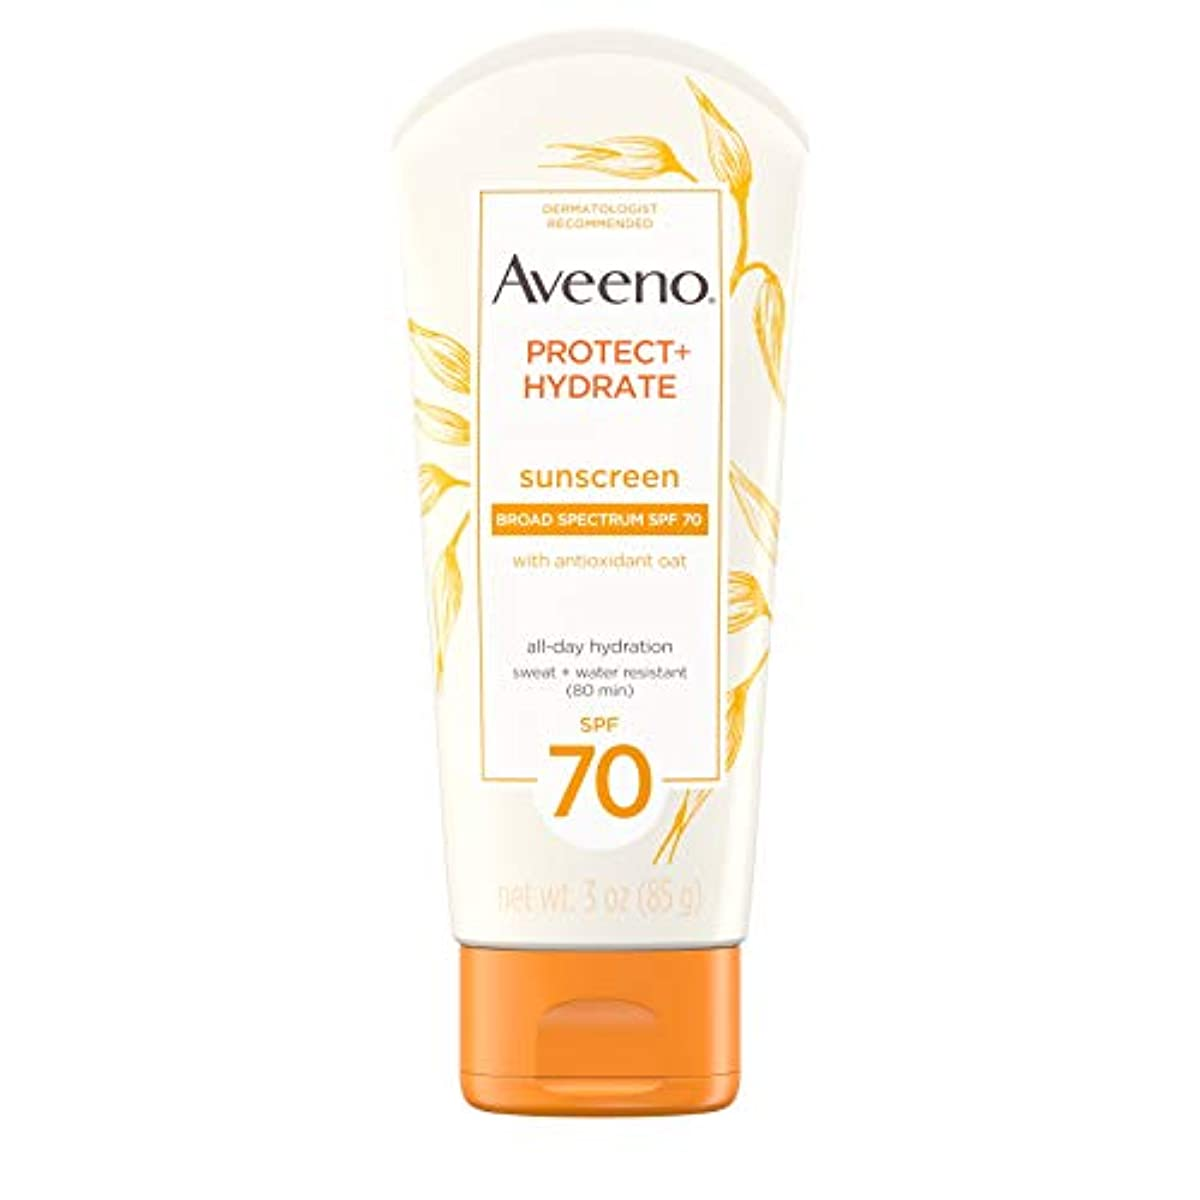 AVEENO® PROTECT + HYDRATE® LOTION SUNSCREEN WITH BROAD SPECTRUM SPF 70-3oz(85g) アヴィーノ プロテクト+ハイドレイトローション サンスクリーン